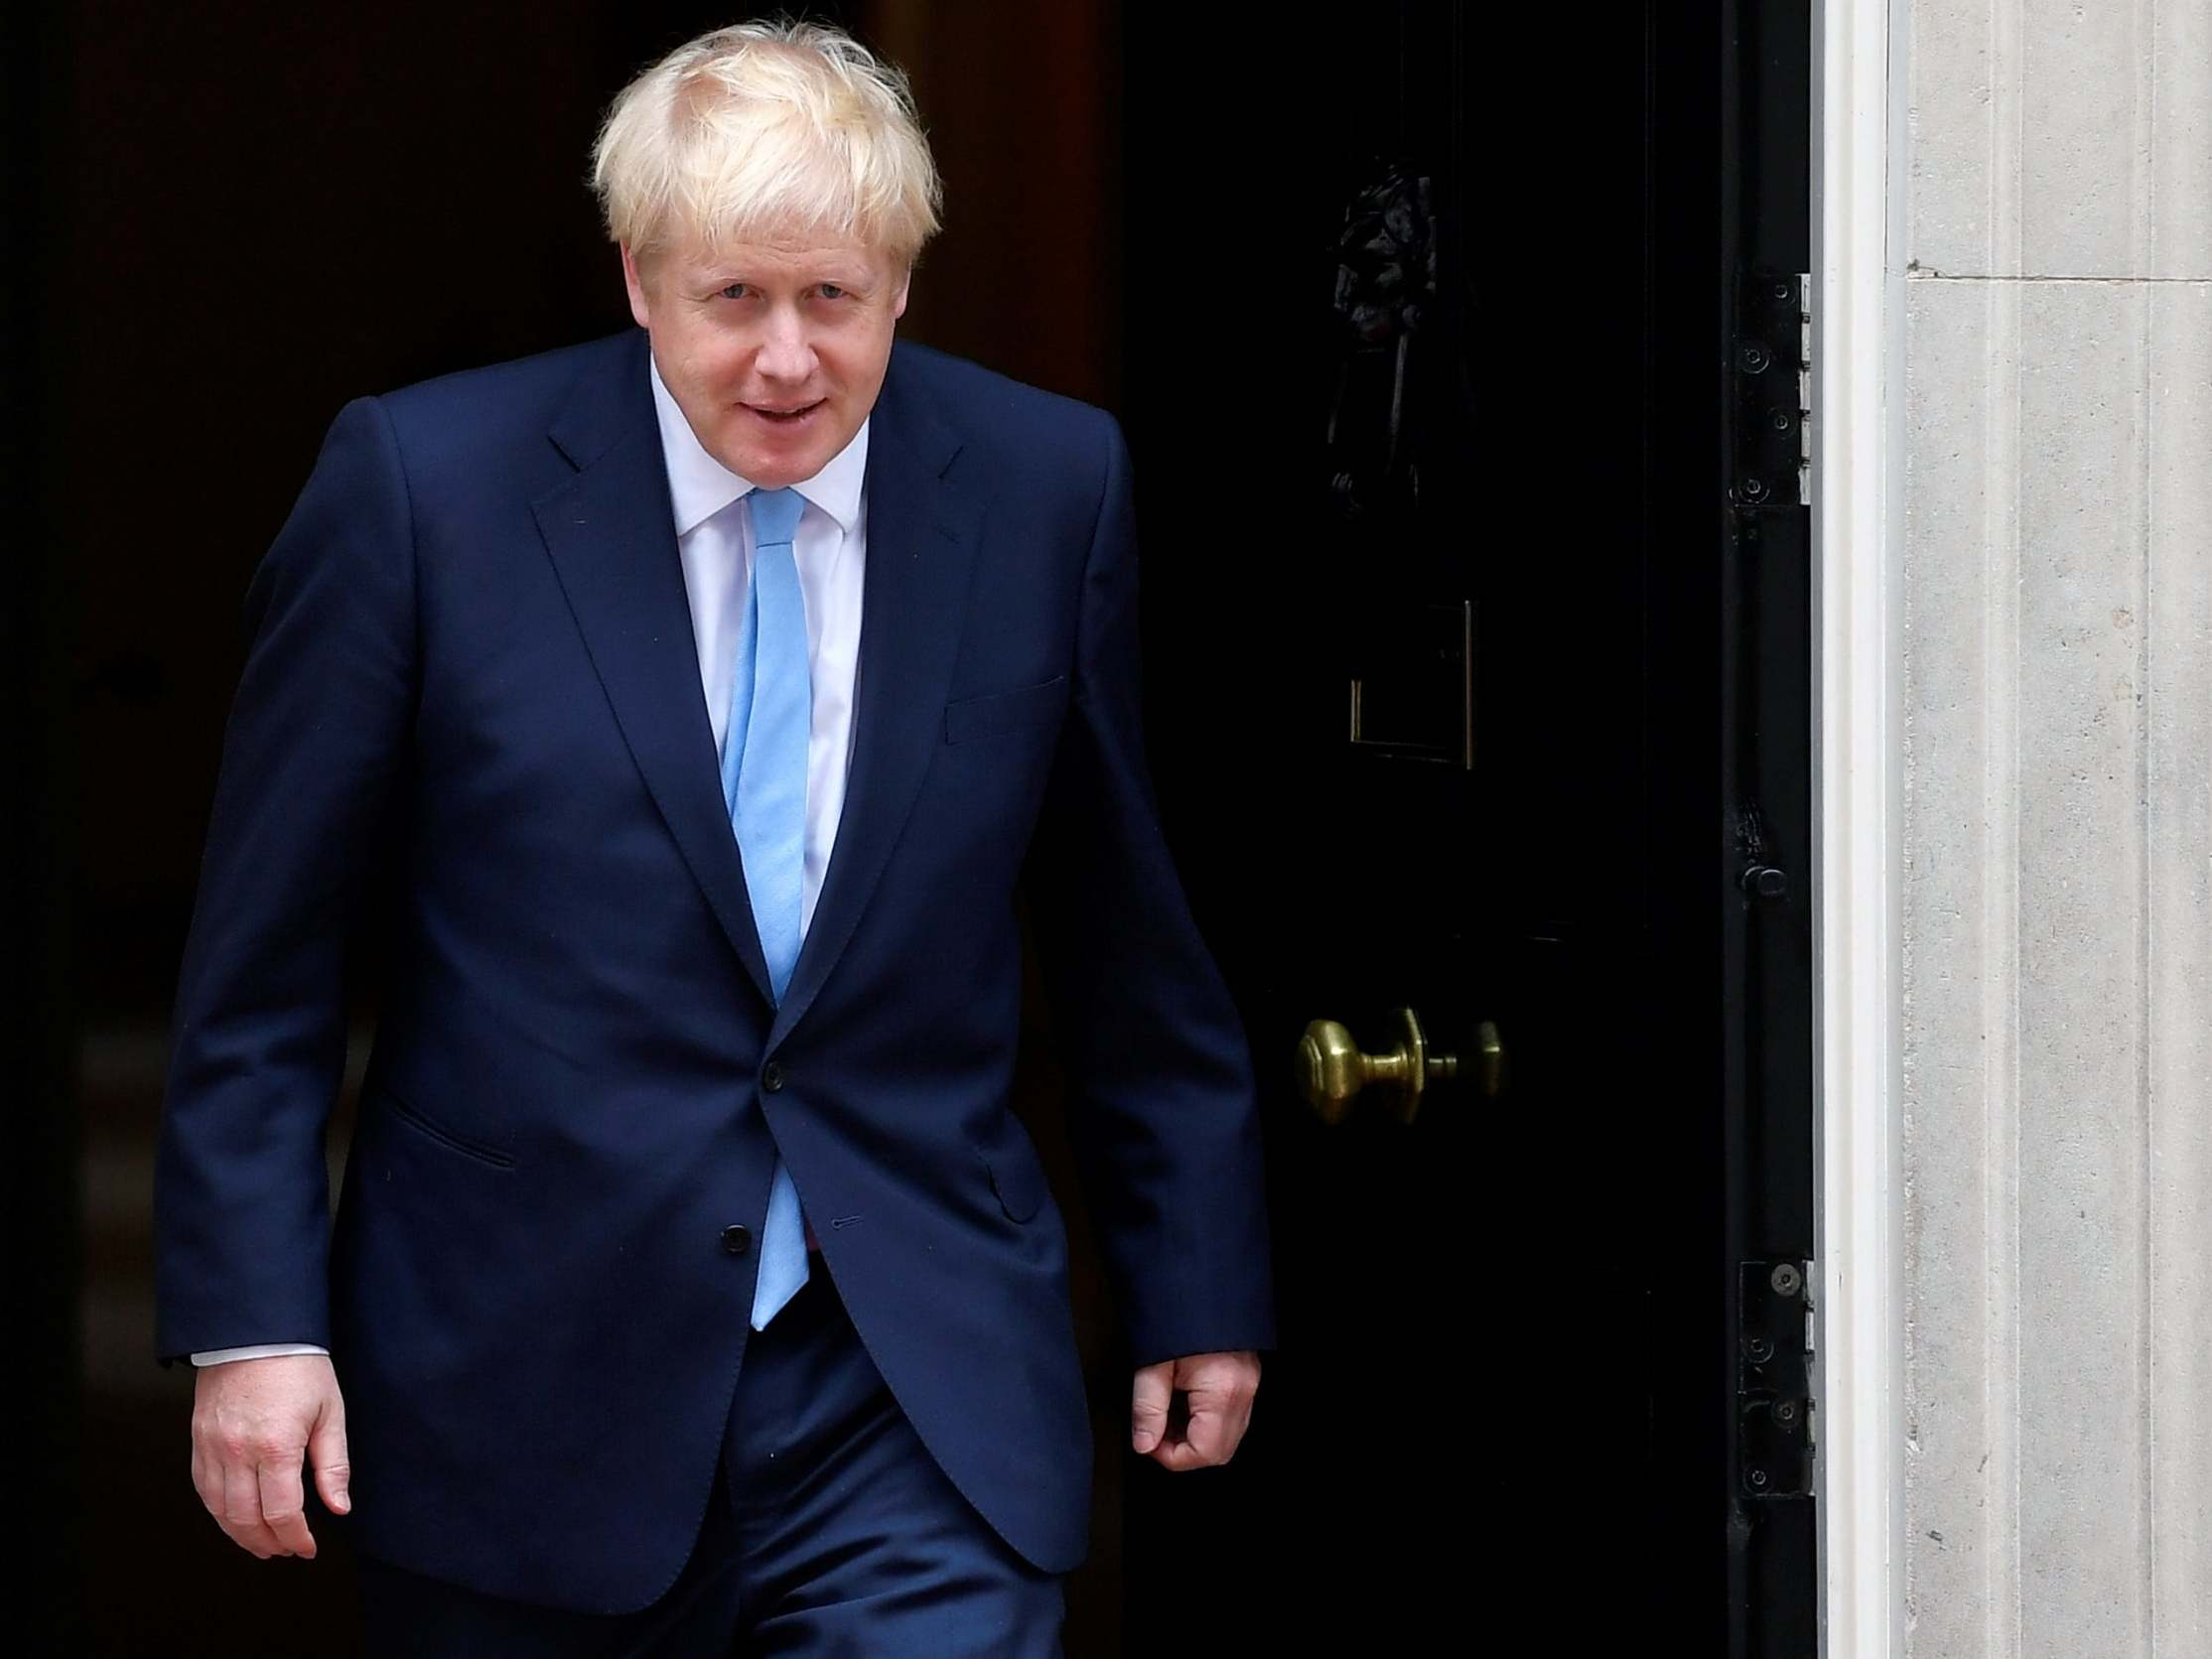 Brexit: Boris Johnson says no-deal food, fuel and medicine shortages are 'bumps in the road'